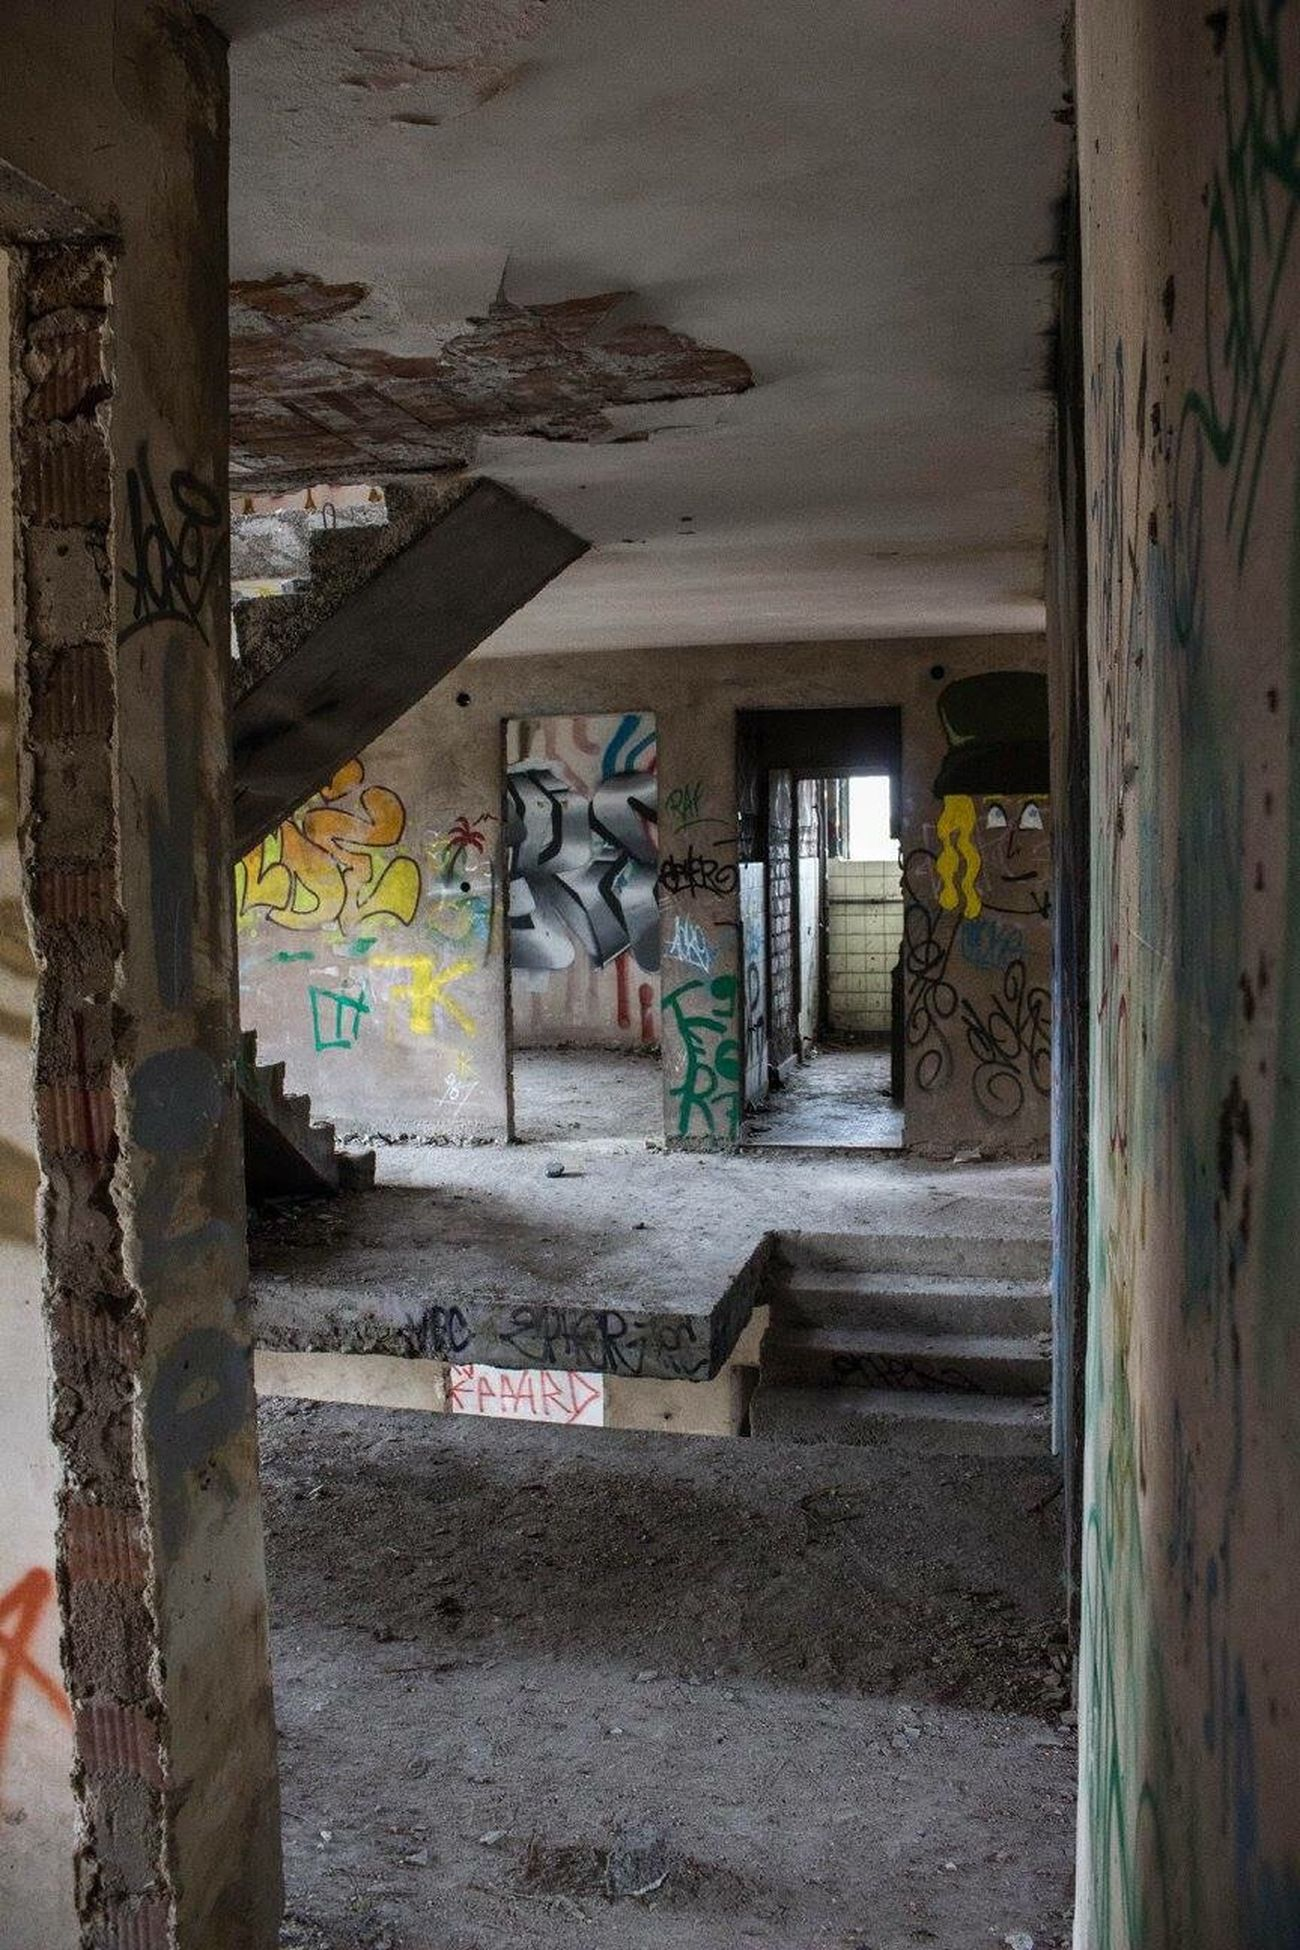 Graffiti Abandoned Architecture Damaged Abandoned Buildings Canonphotography Tadaa Community Urbex Built Structure Urbexphotography Lostplaces Lost Places Abandoned Hotel EyeEm Abandoned Beauty Of Decay Decay Graffiti Art